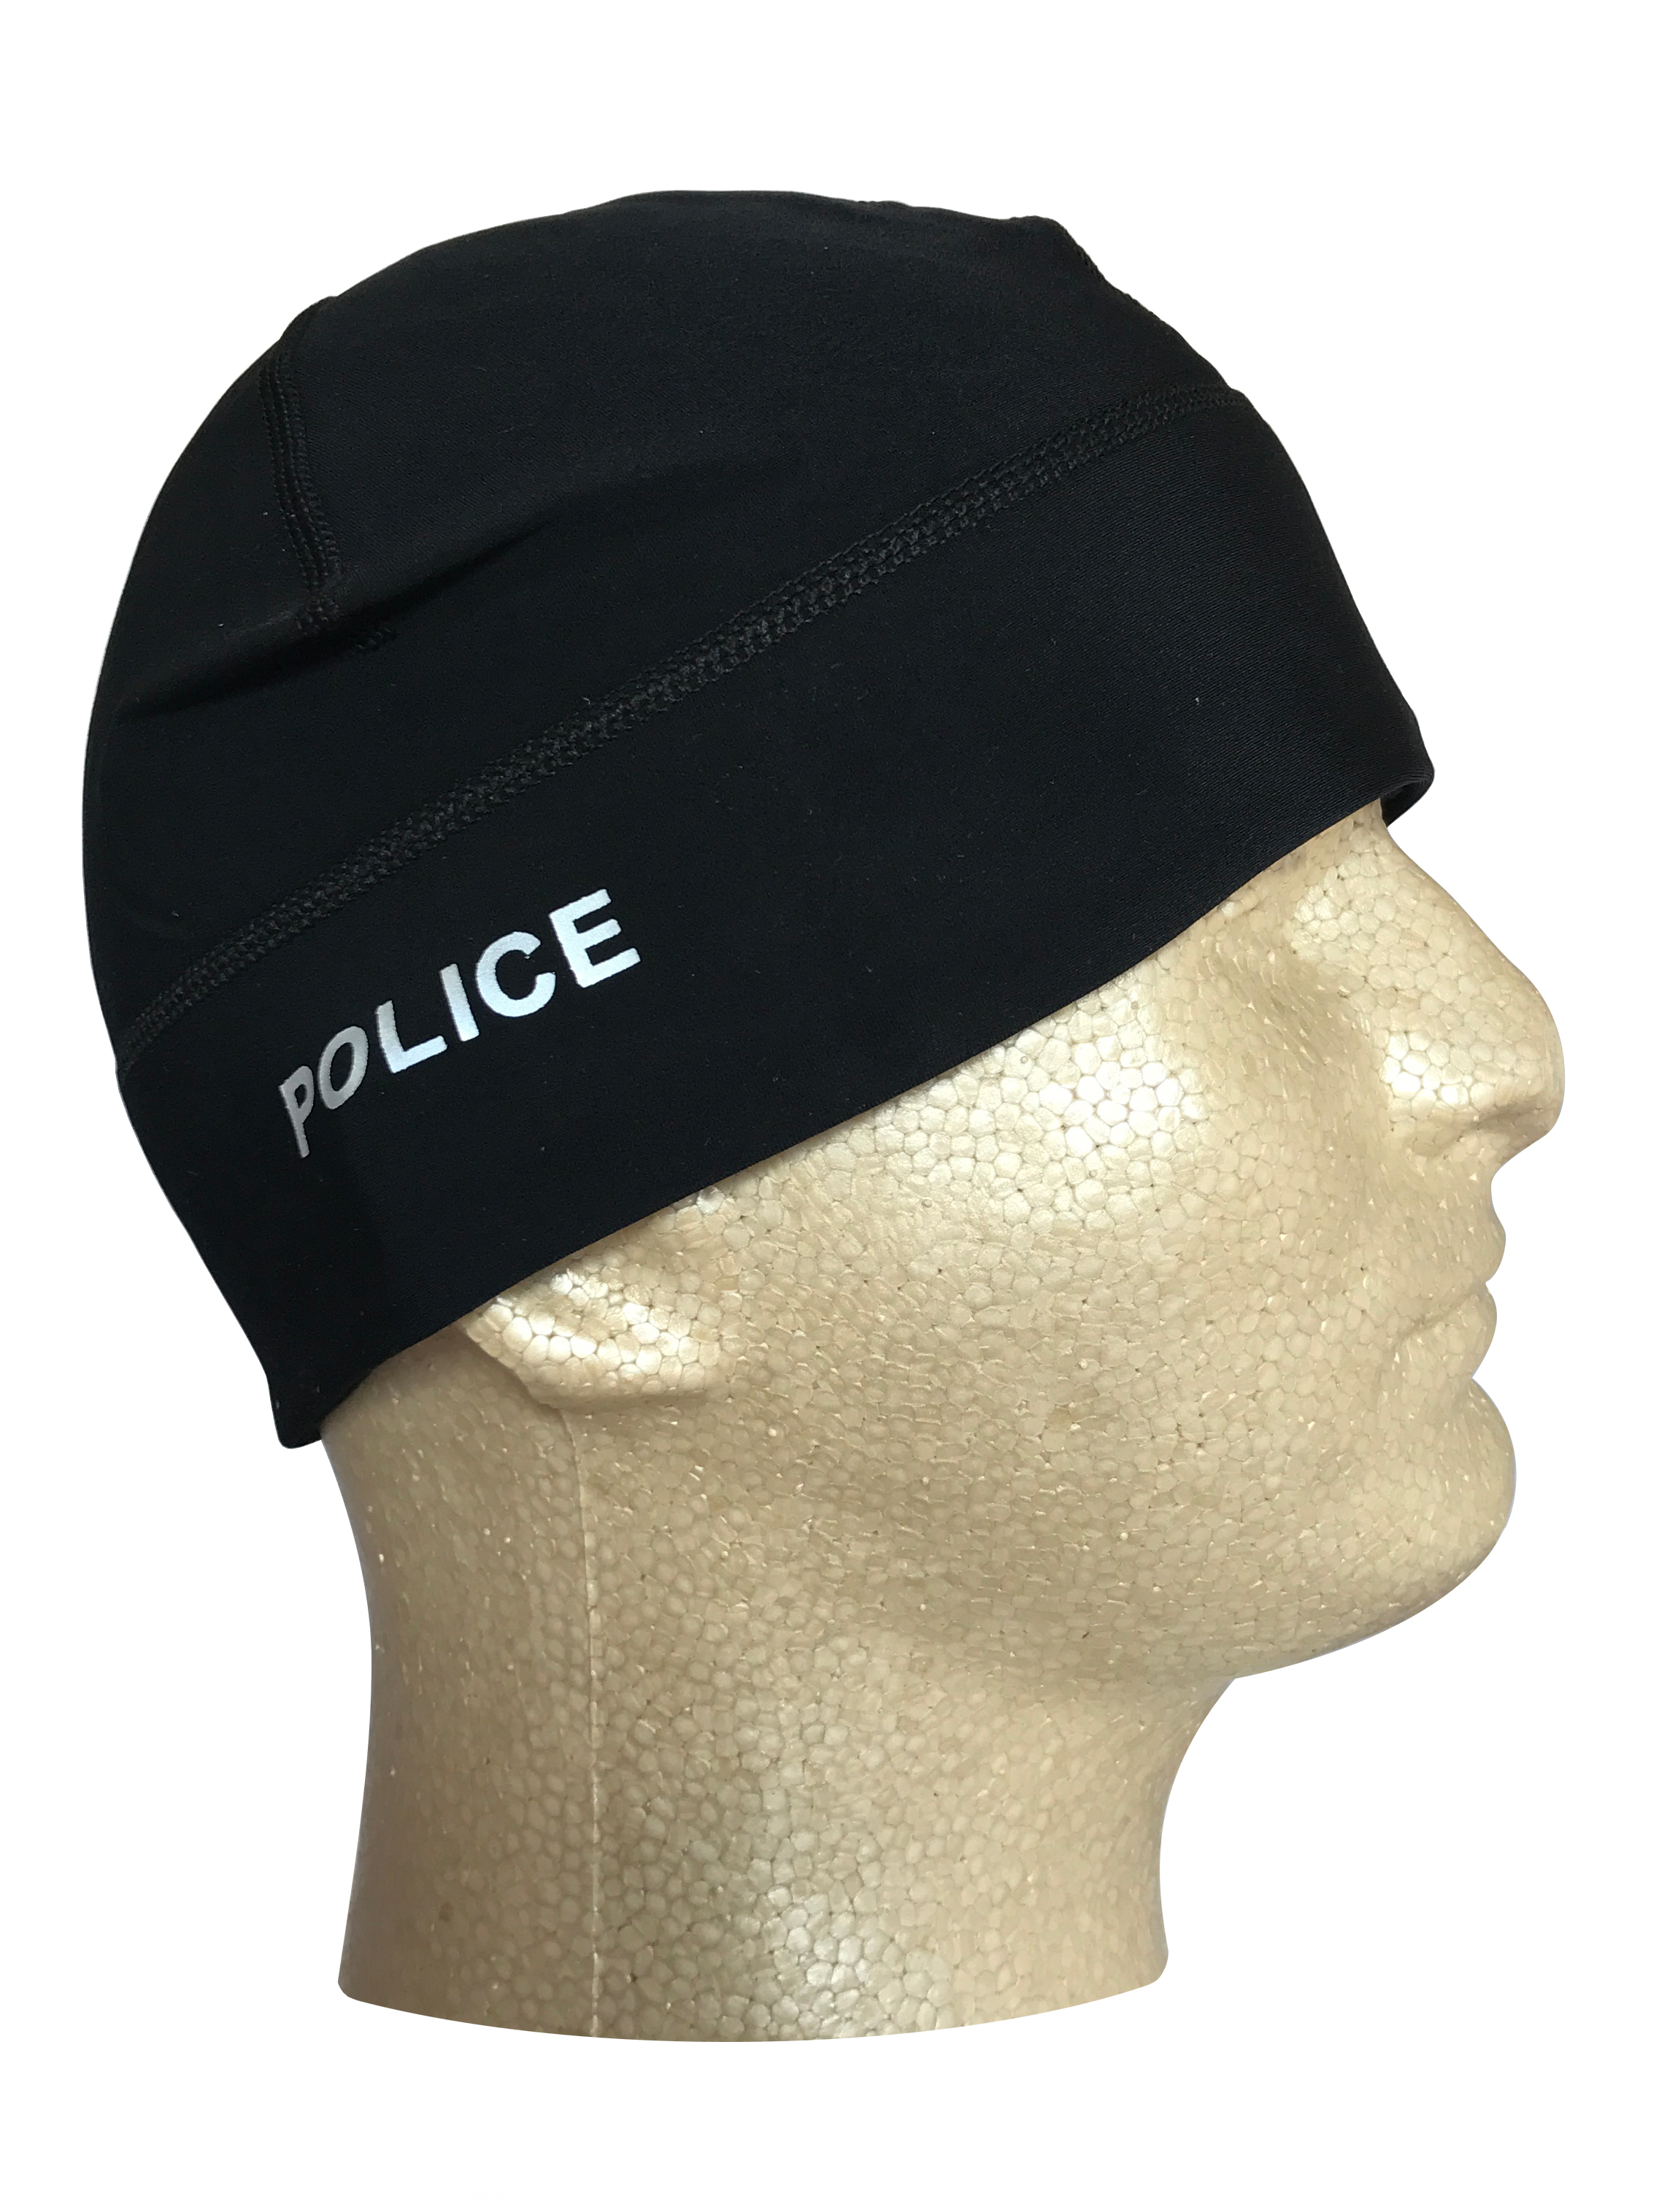 To acquire How to police a wear hat picture trends